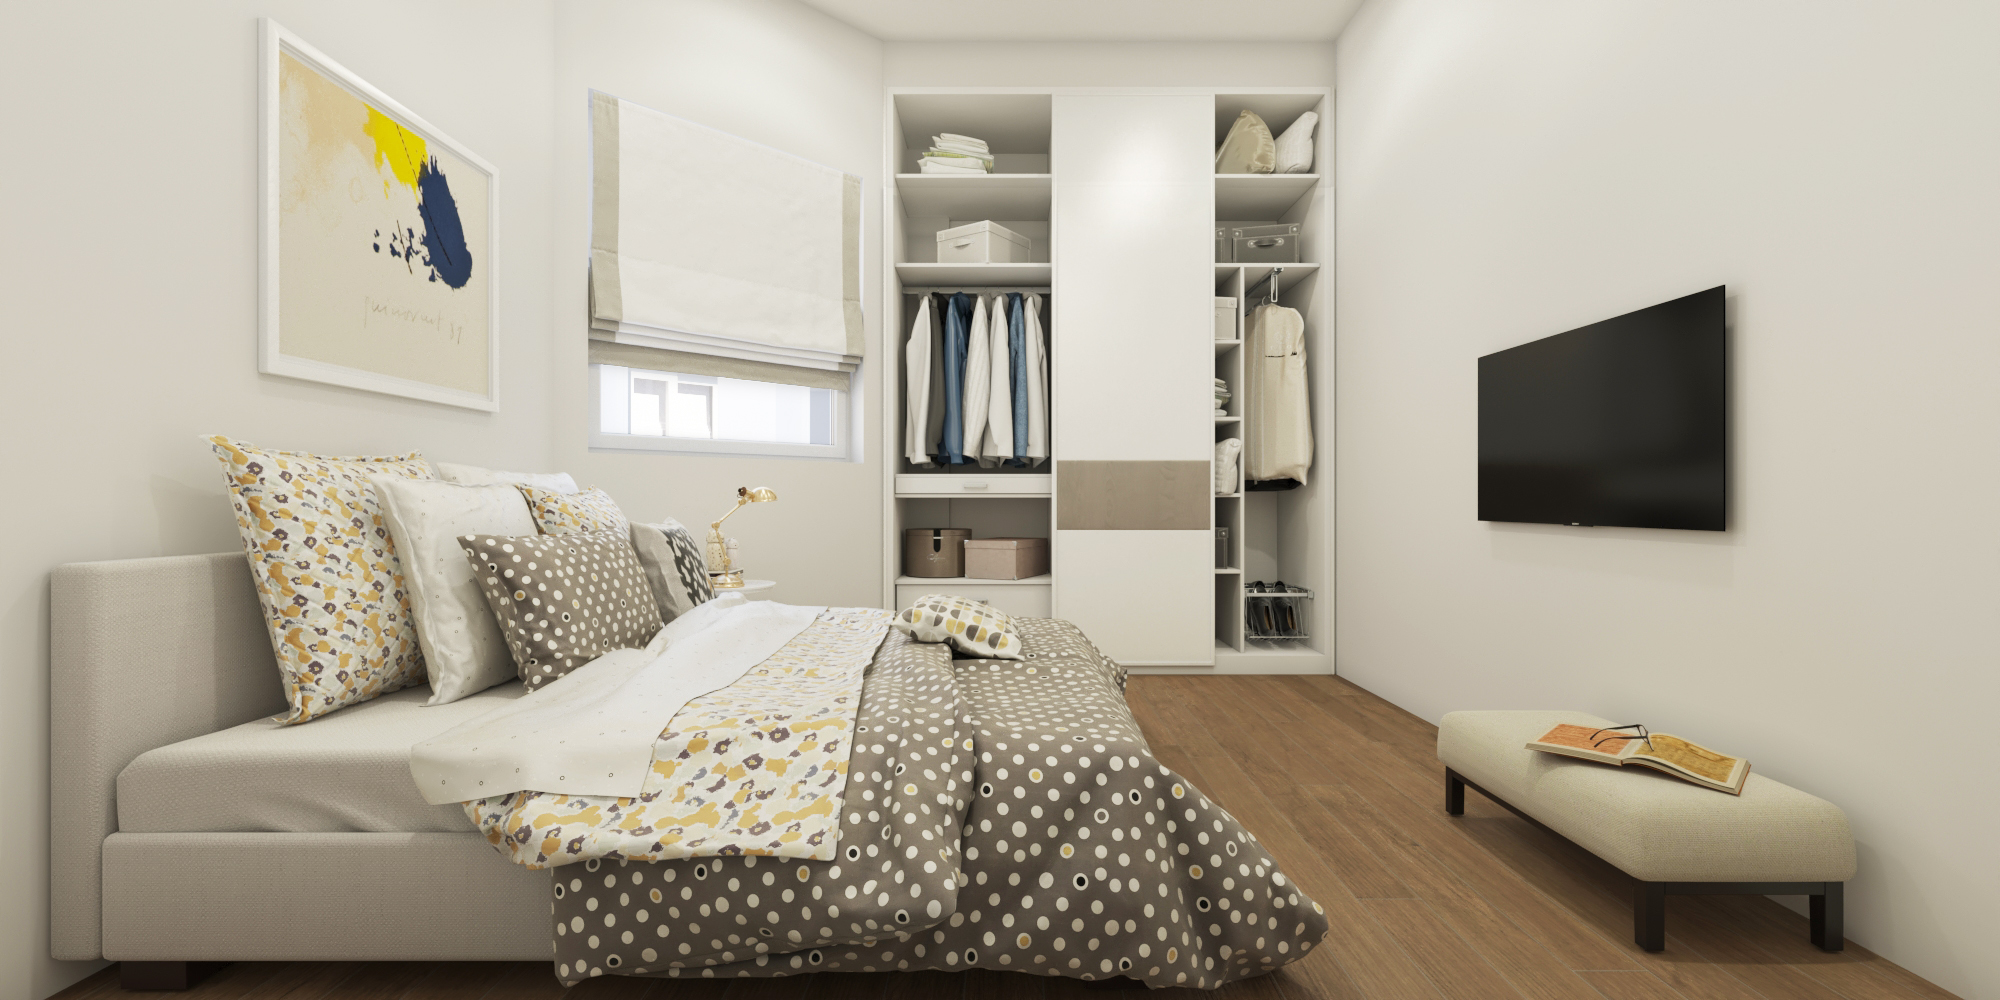 Apartment,For Sale,1144